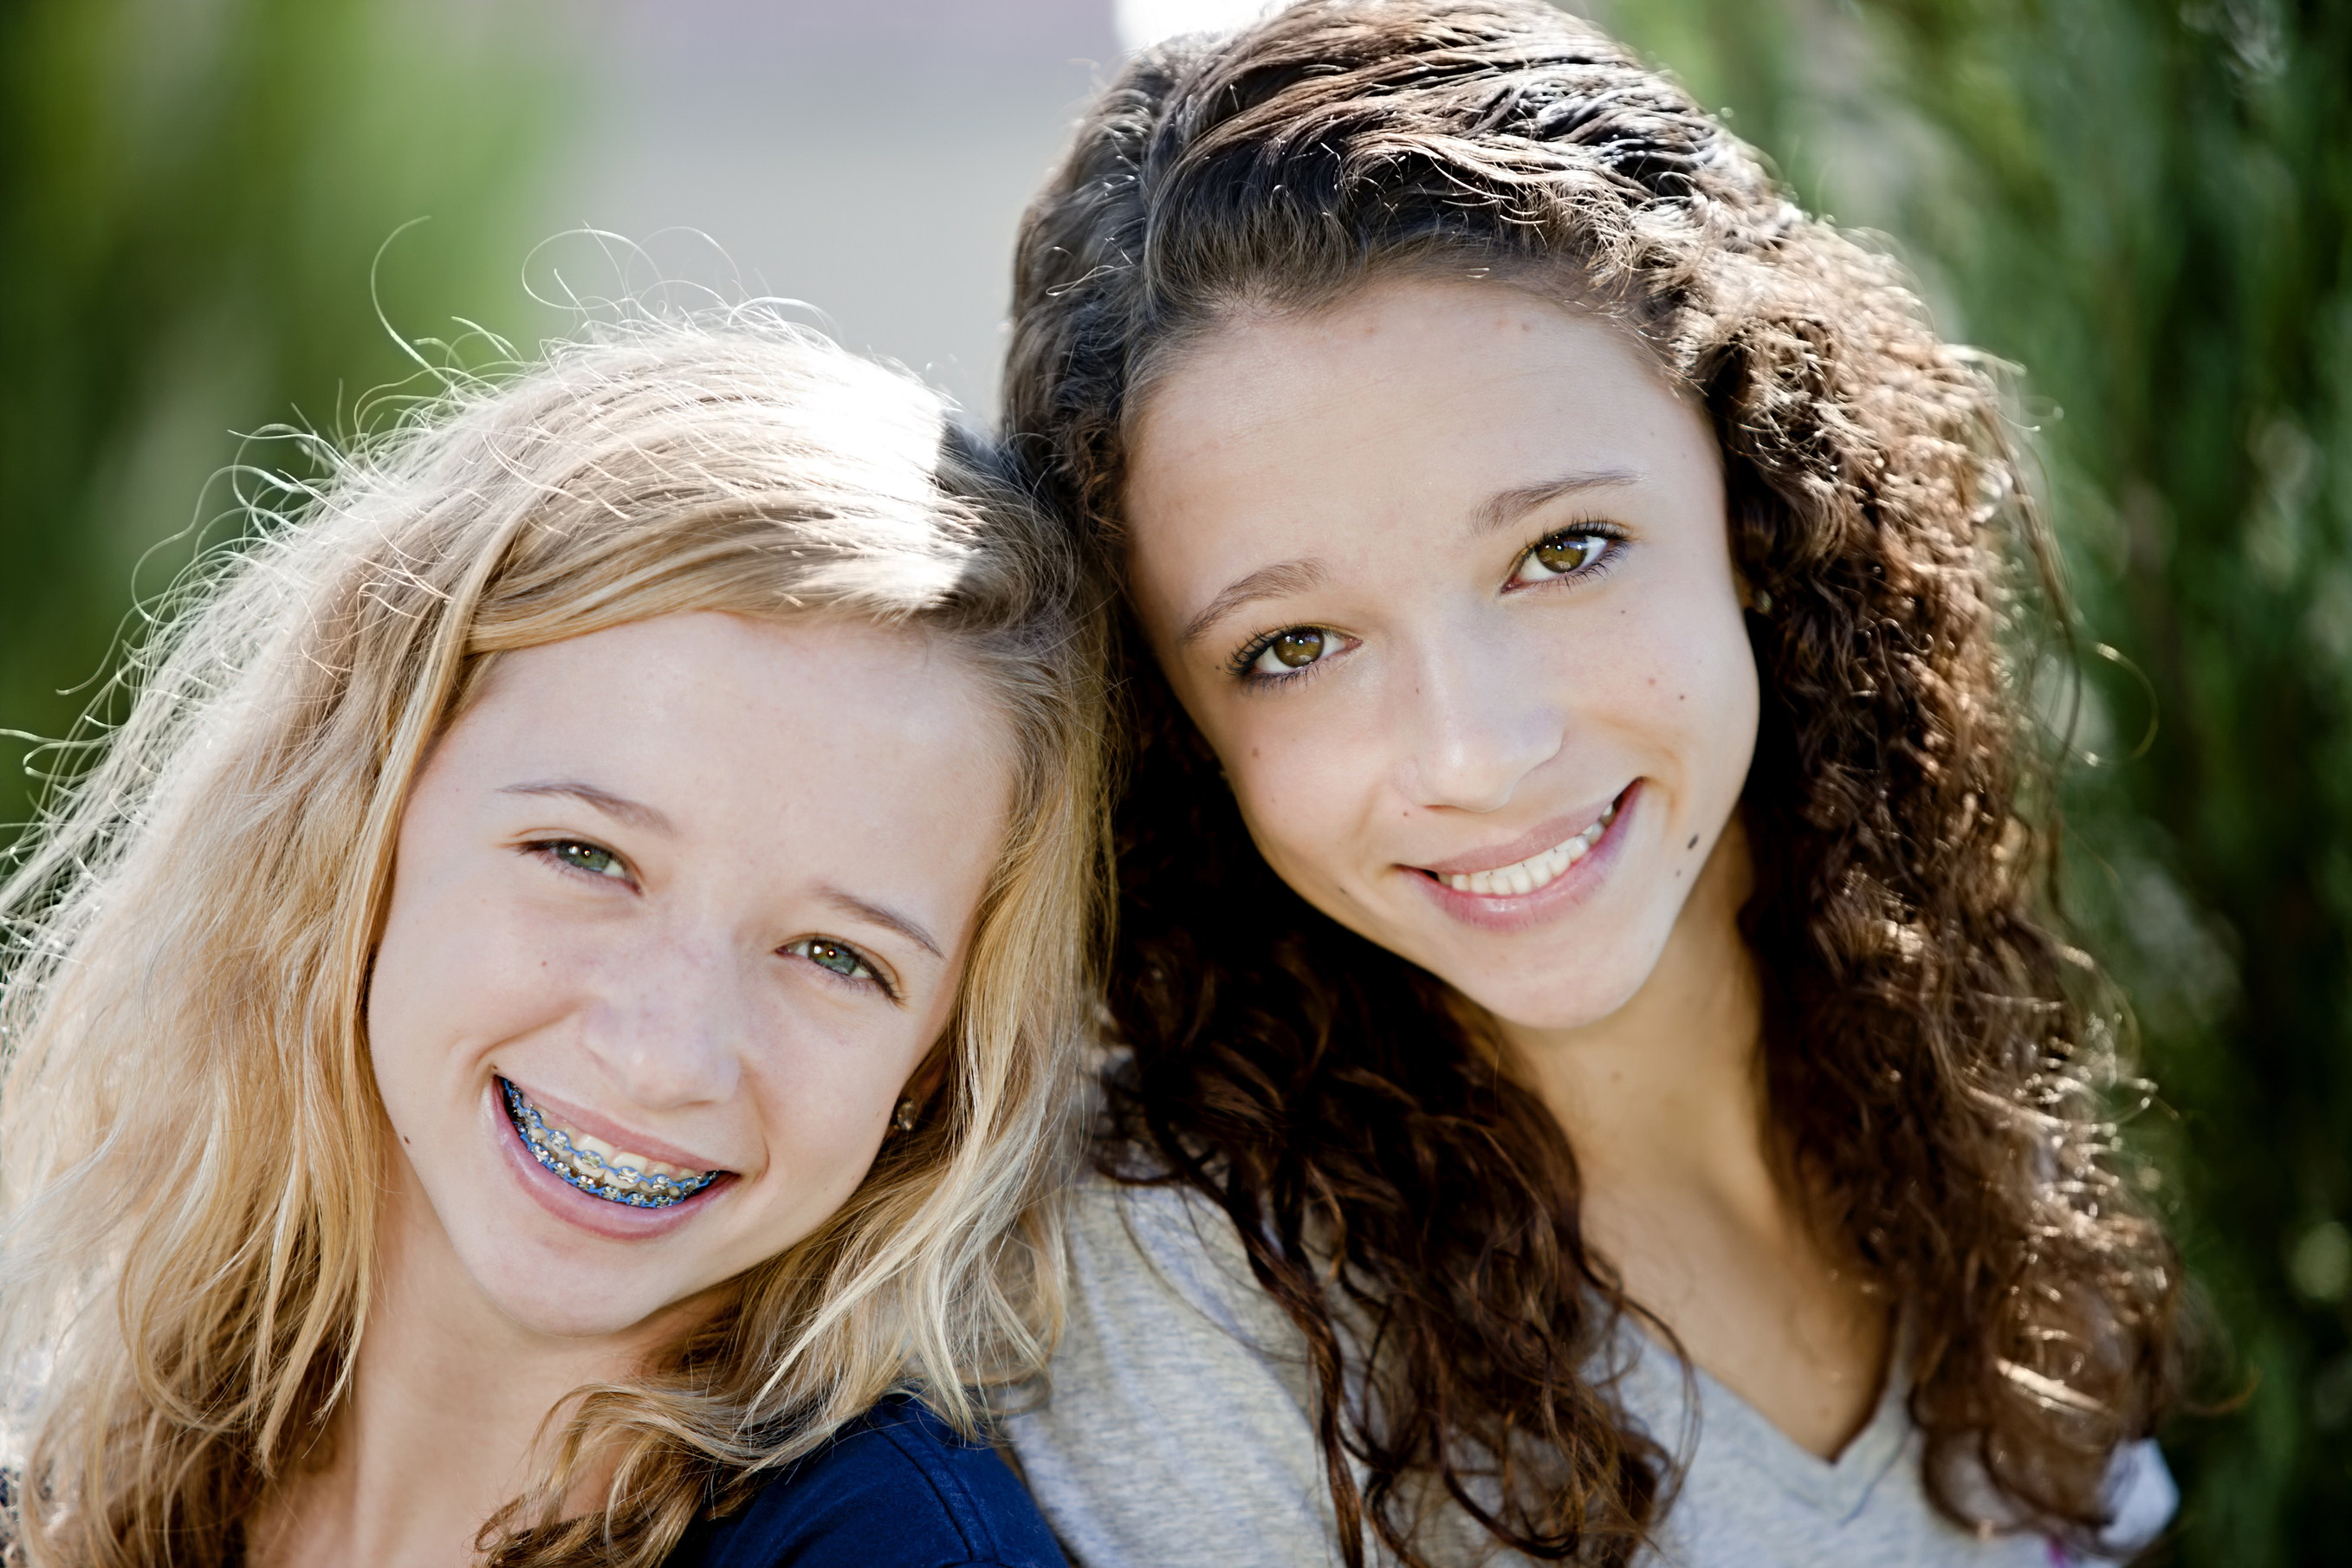 A head and shoulders image of two smiling caucasian real teenage girls. The girls are 13 year old twin sisters. The image is outdoors on a sunny day in the park. Extreme shallow depth of field,